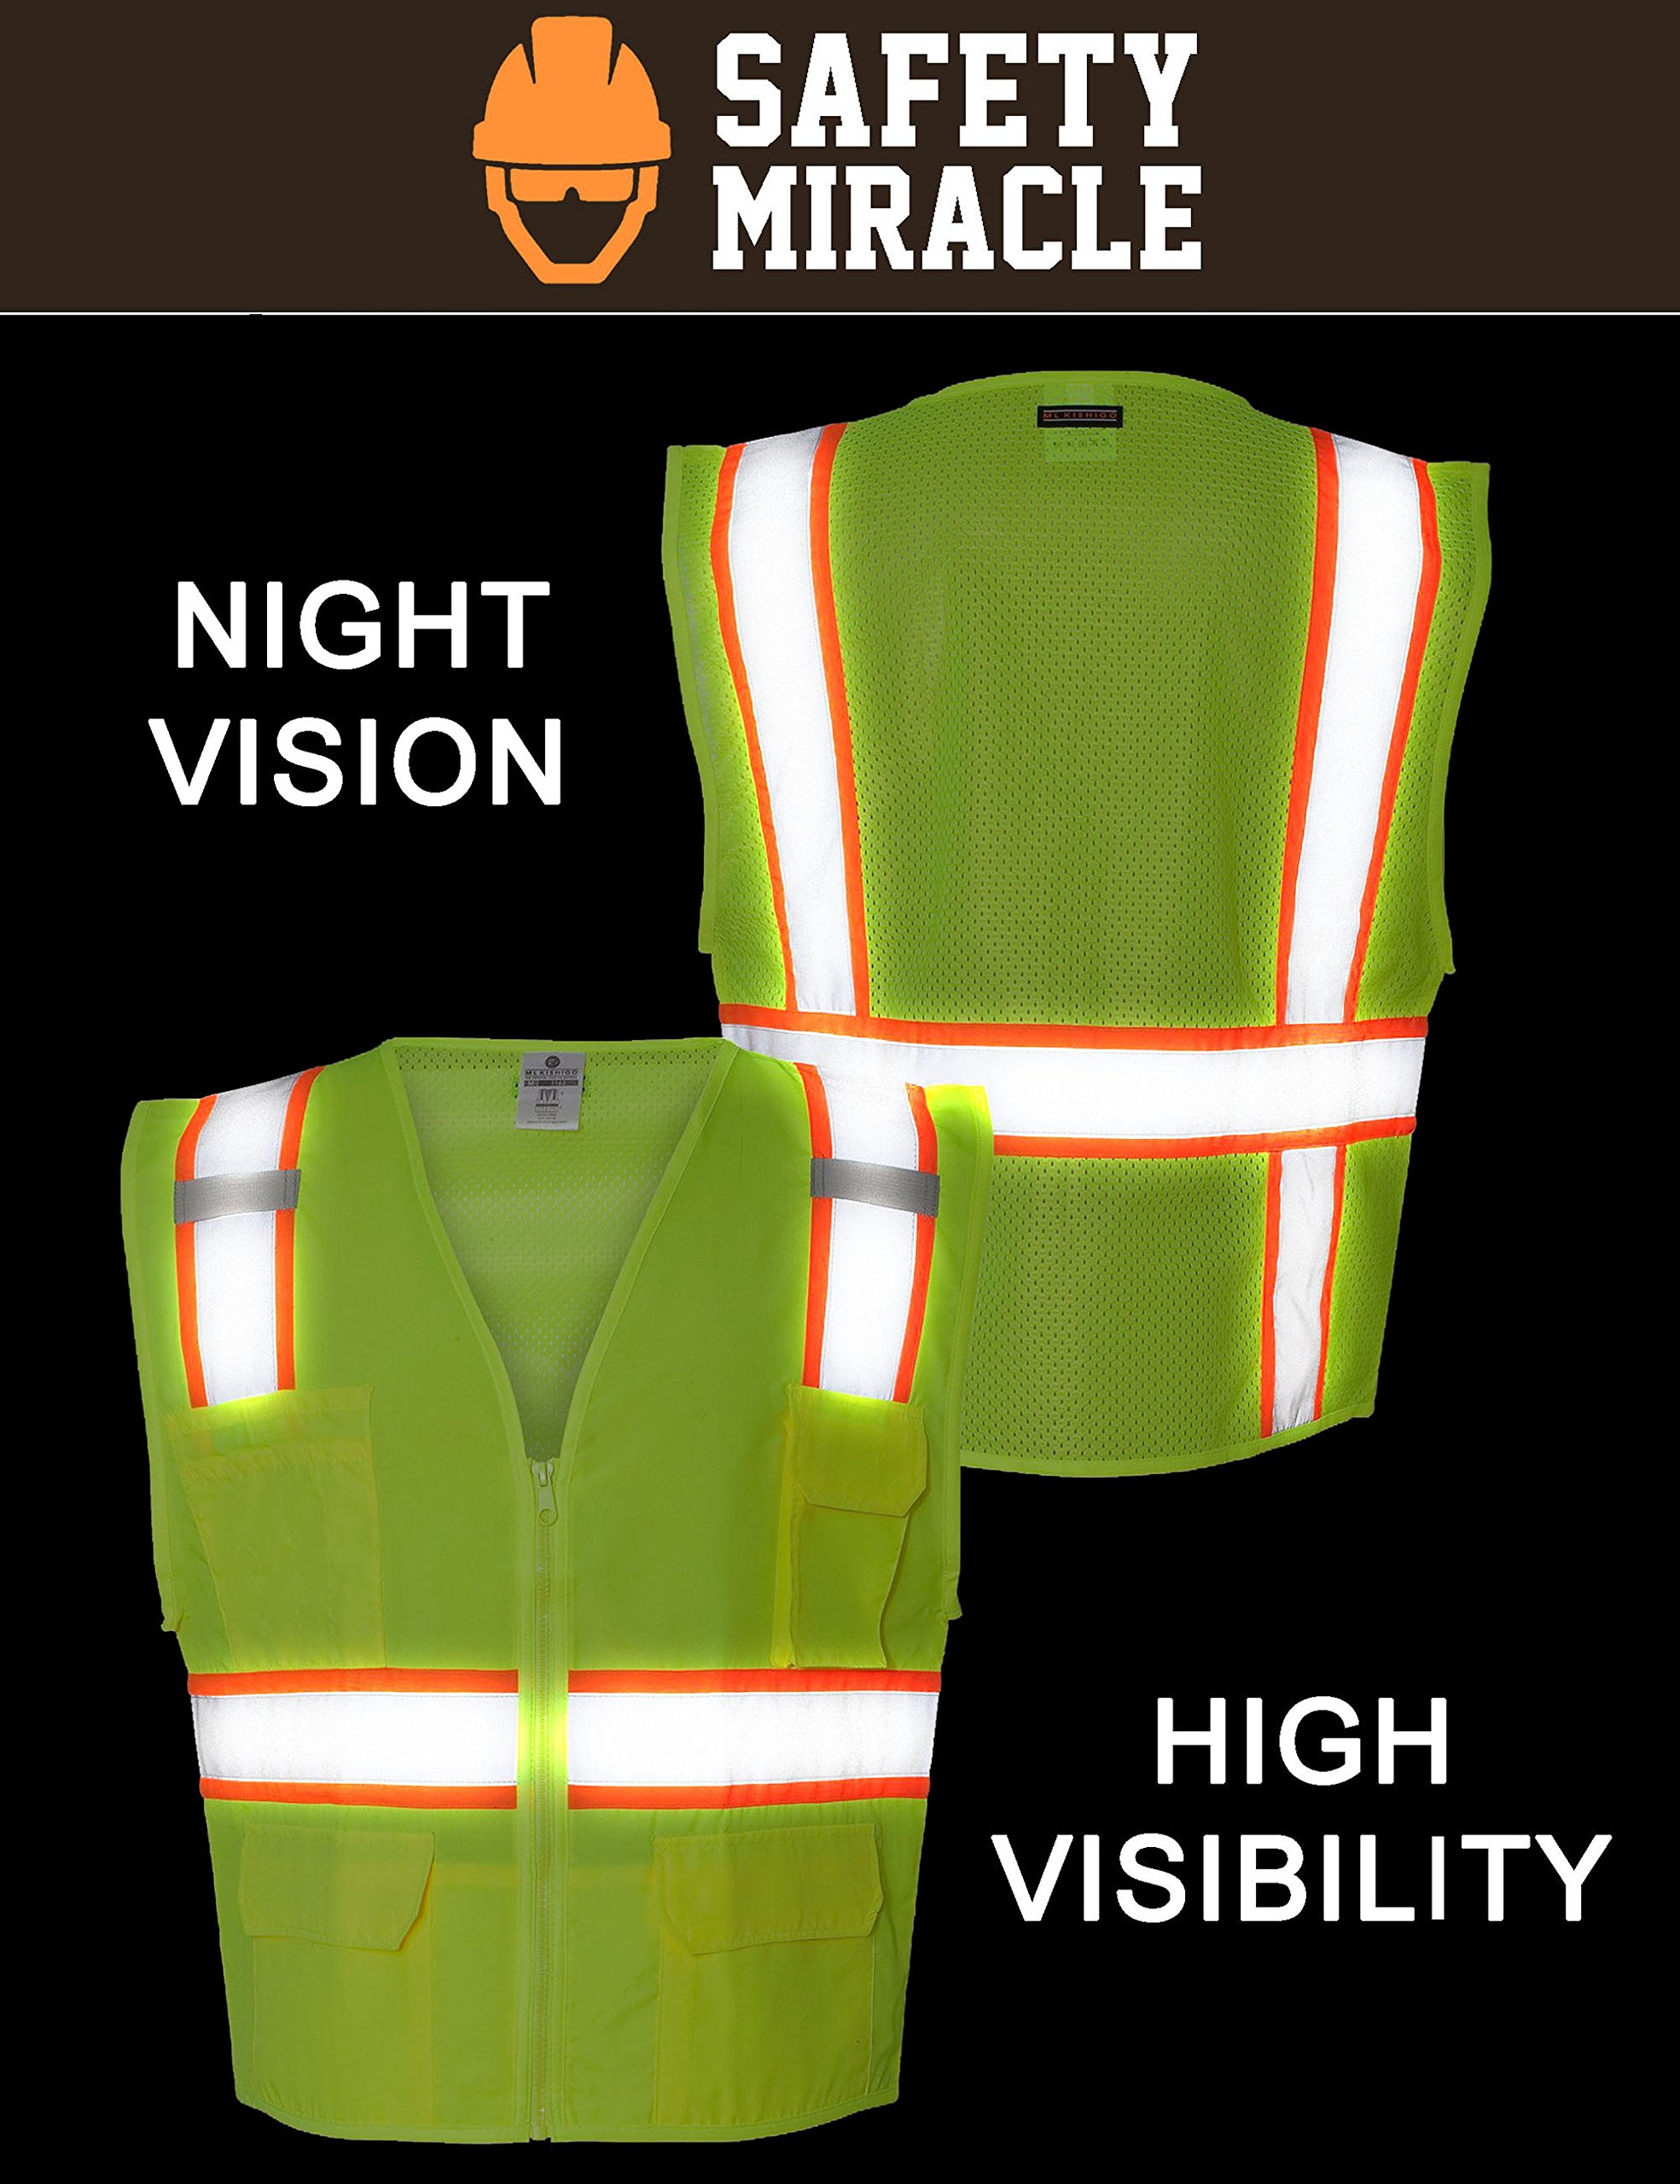 Custom Safety Reflective Mesh Vest with Zipper - Personalized Drone Pilot Vest by Safety Miracle (Image #4)